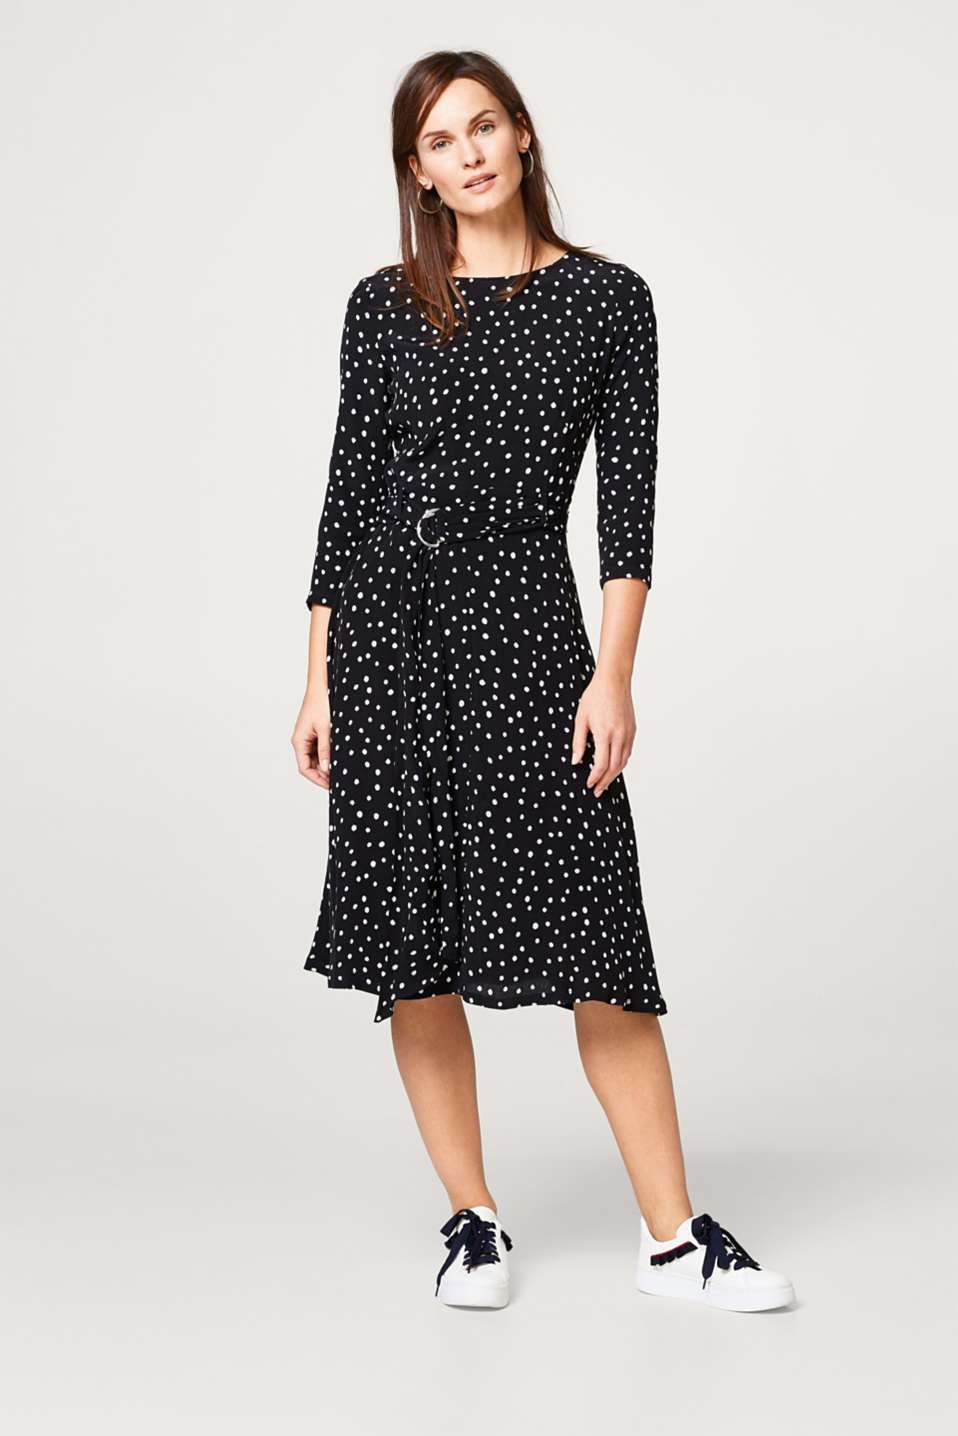 Whimsical dress with polka dots